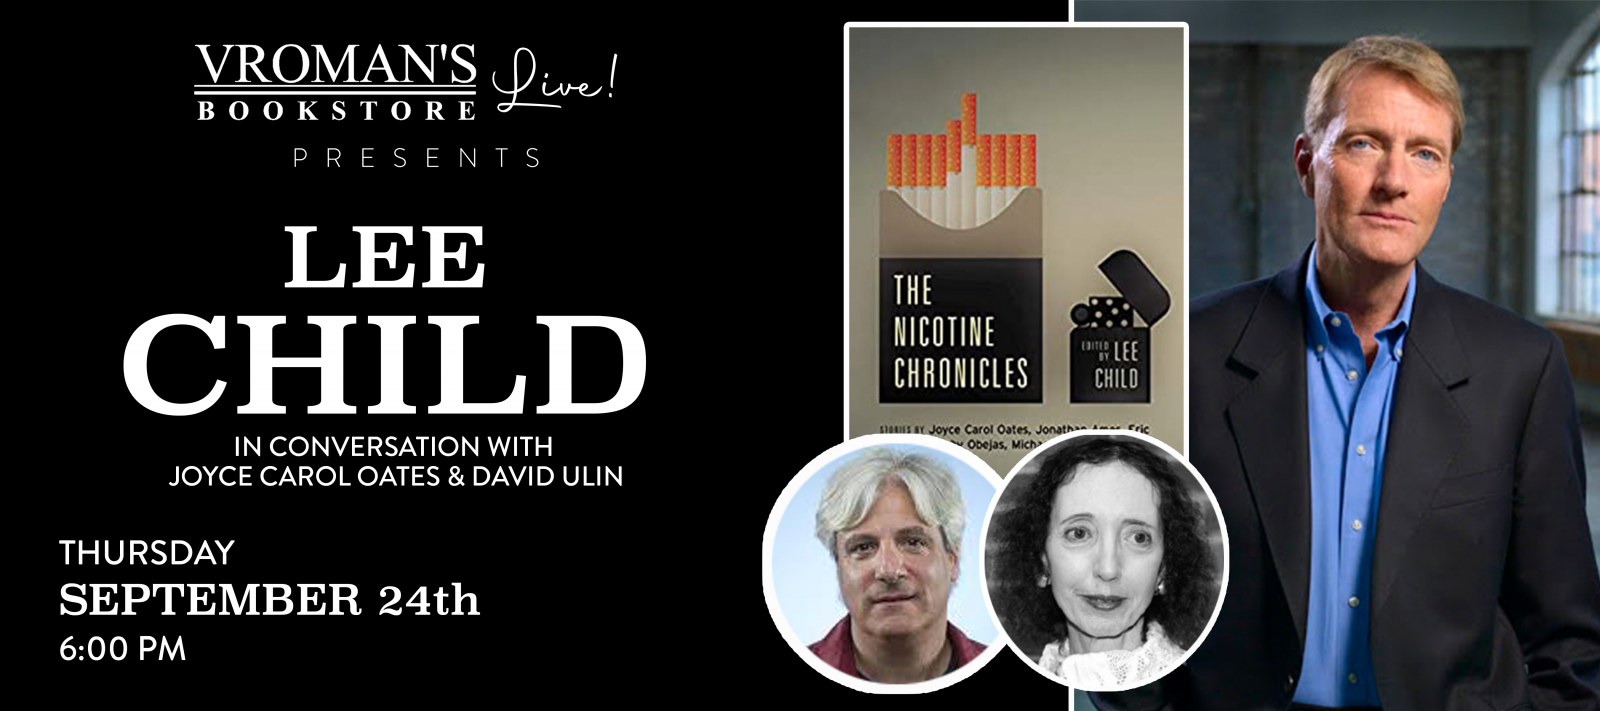 Vroman's Live presents Lee Child, in conversation with Joyce Carol Oates and David Ulin, on Thursday September 24 at 6pm